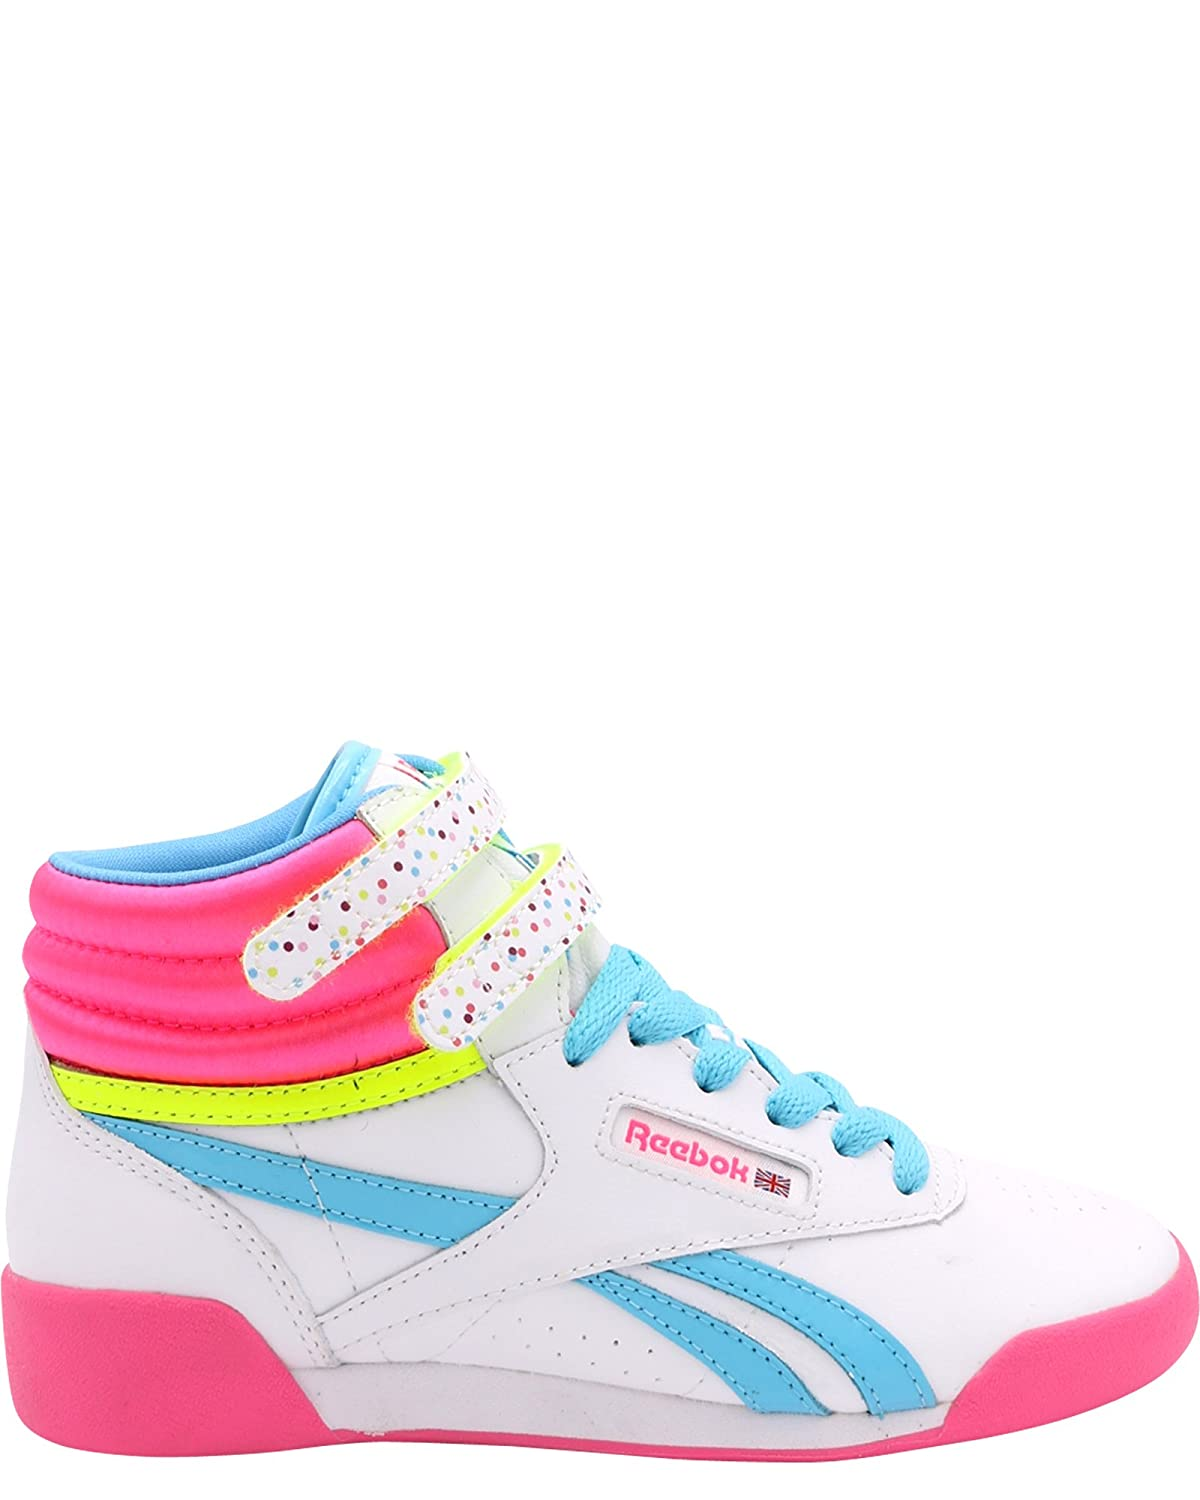 2c25176bf5f Amazon.com  Reebok Kids Girl s Freestyle Hi Birthday (Little Kid)  White Solar Pink Solar Yellow Neon Blue White Pink Aubergine 2.5 M US Little  Kid  Shoes